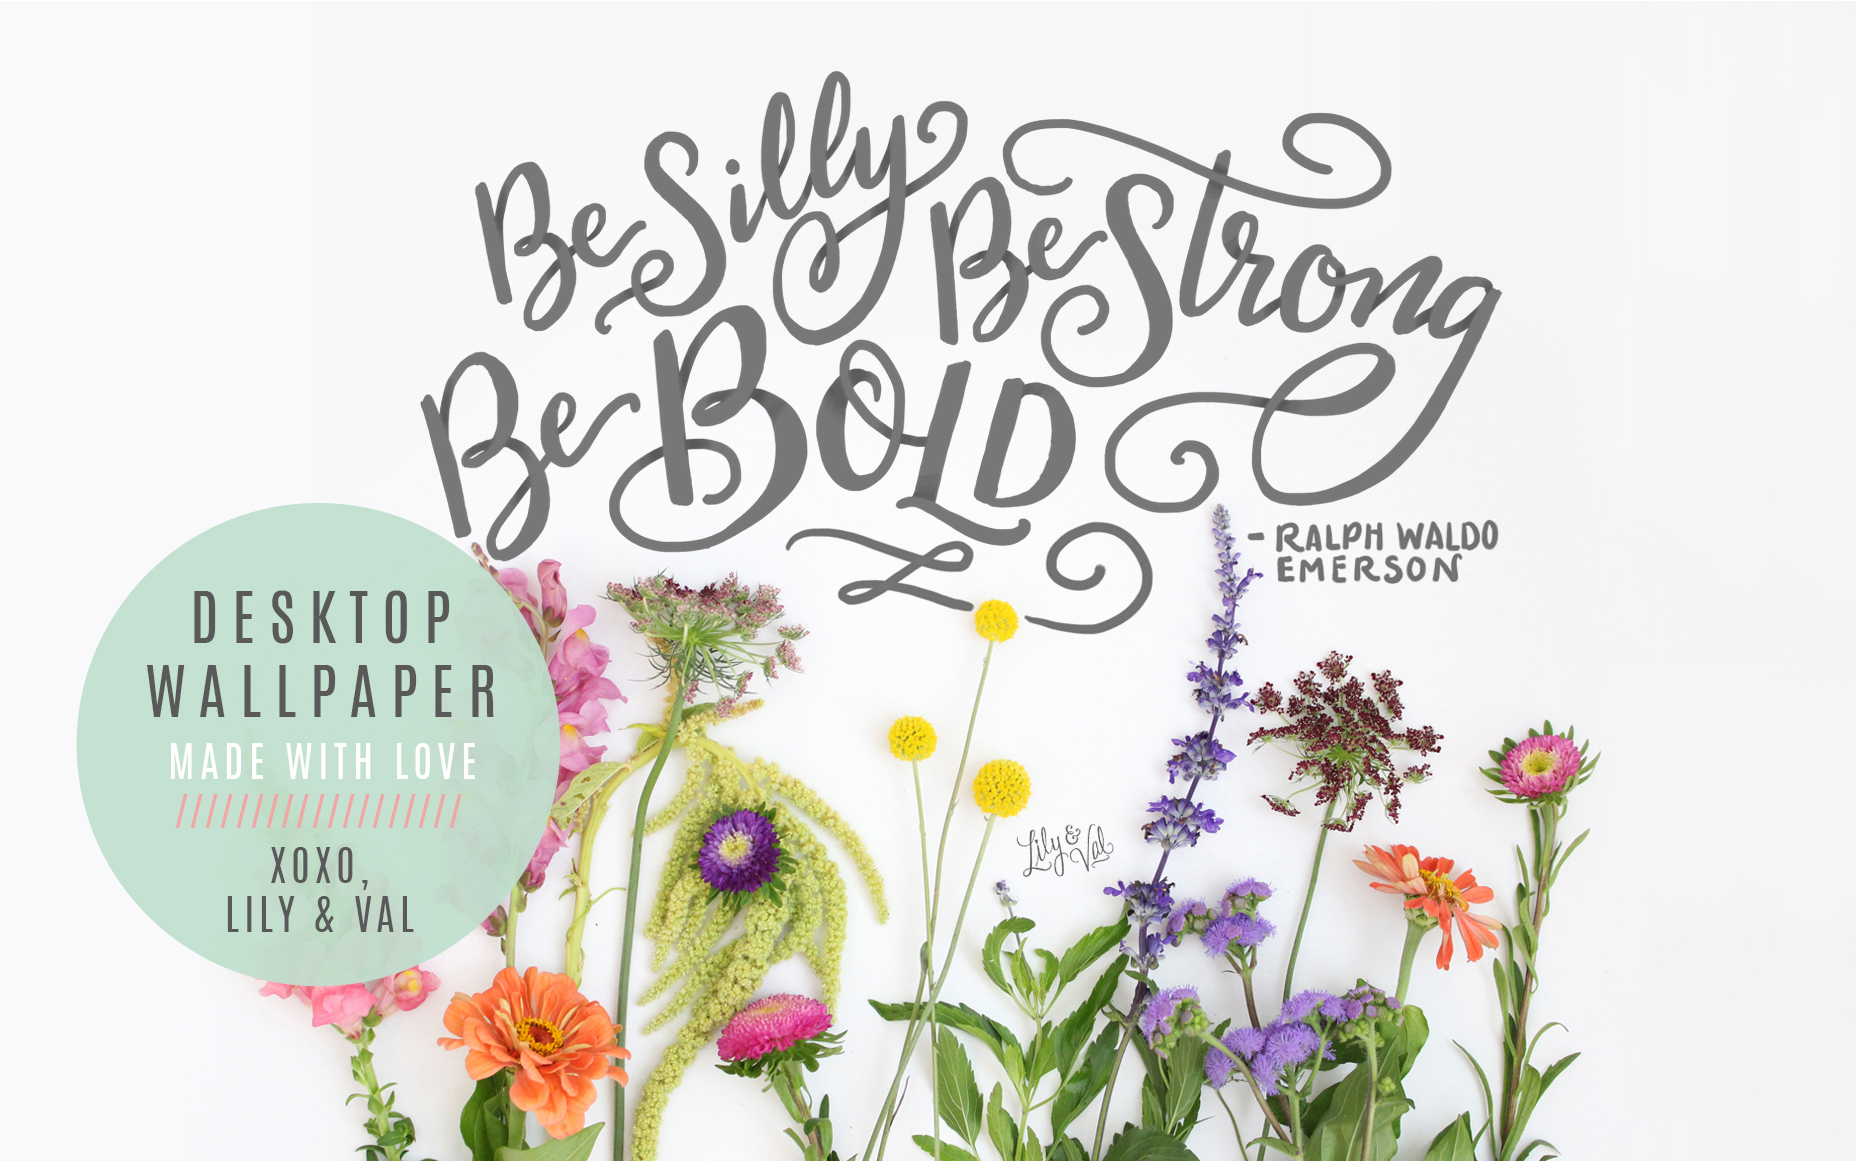 """Be silly, be strong, be bold."" Floral desktop wallpaper on Lily & Val Living!"